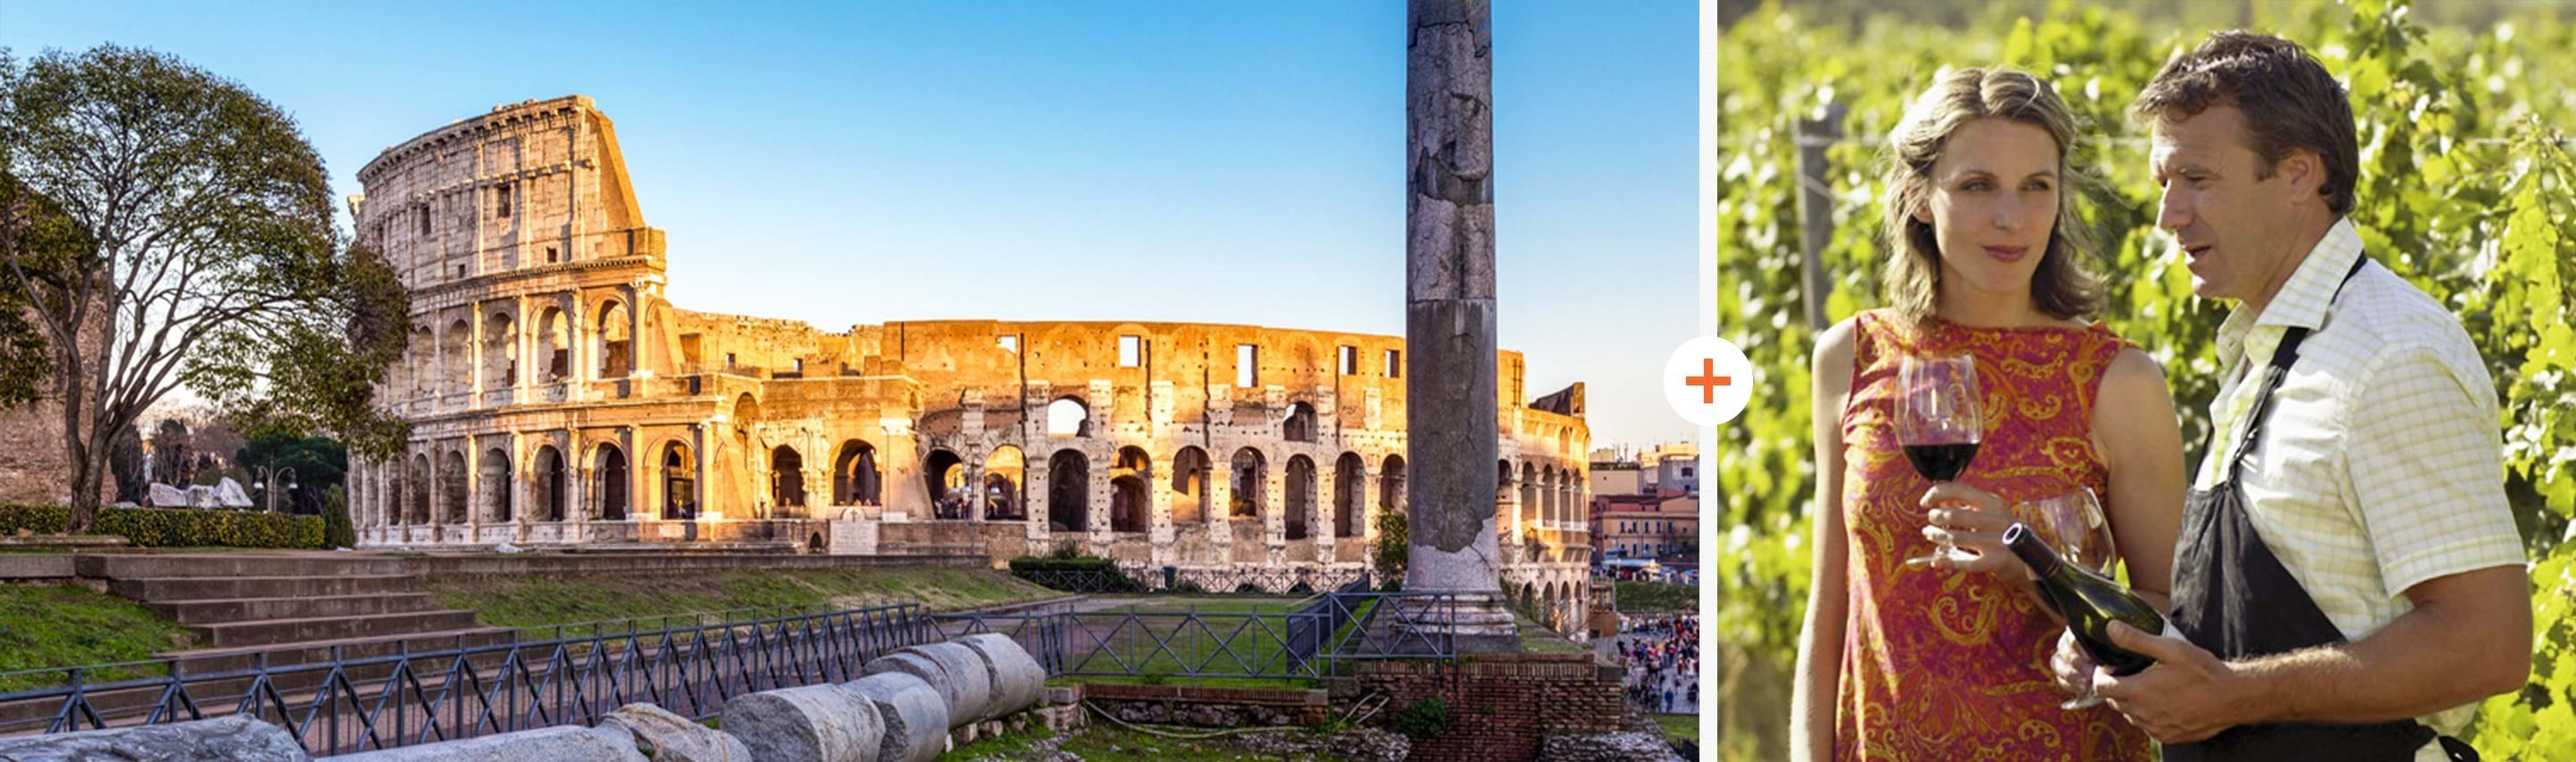 Colosseum and Roman Countryside Vineyard Wine Tasting ComboSaver Tour